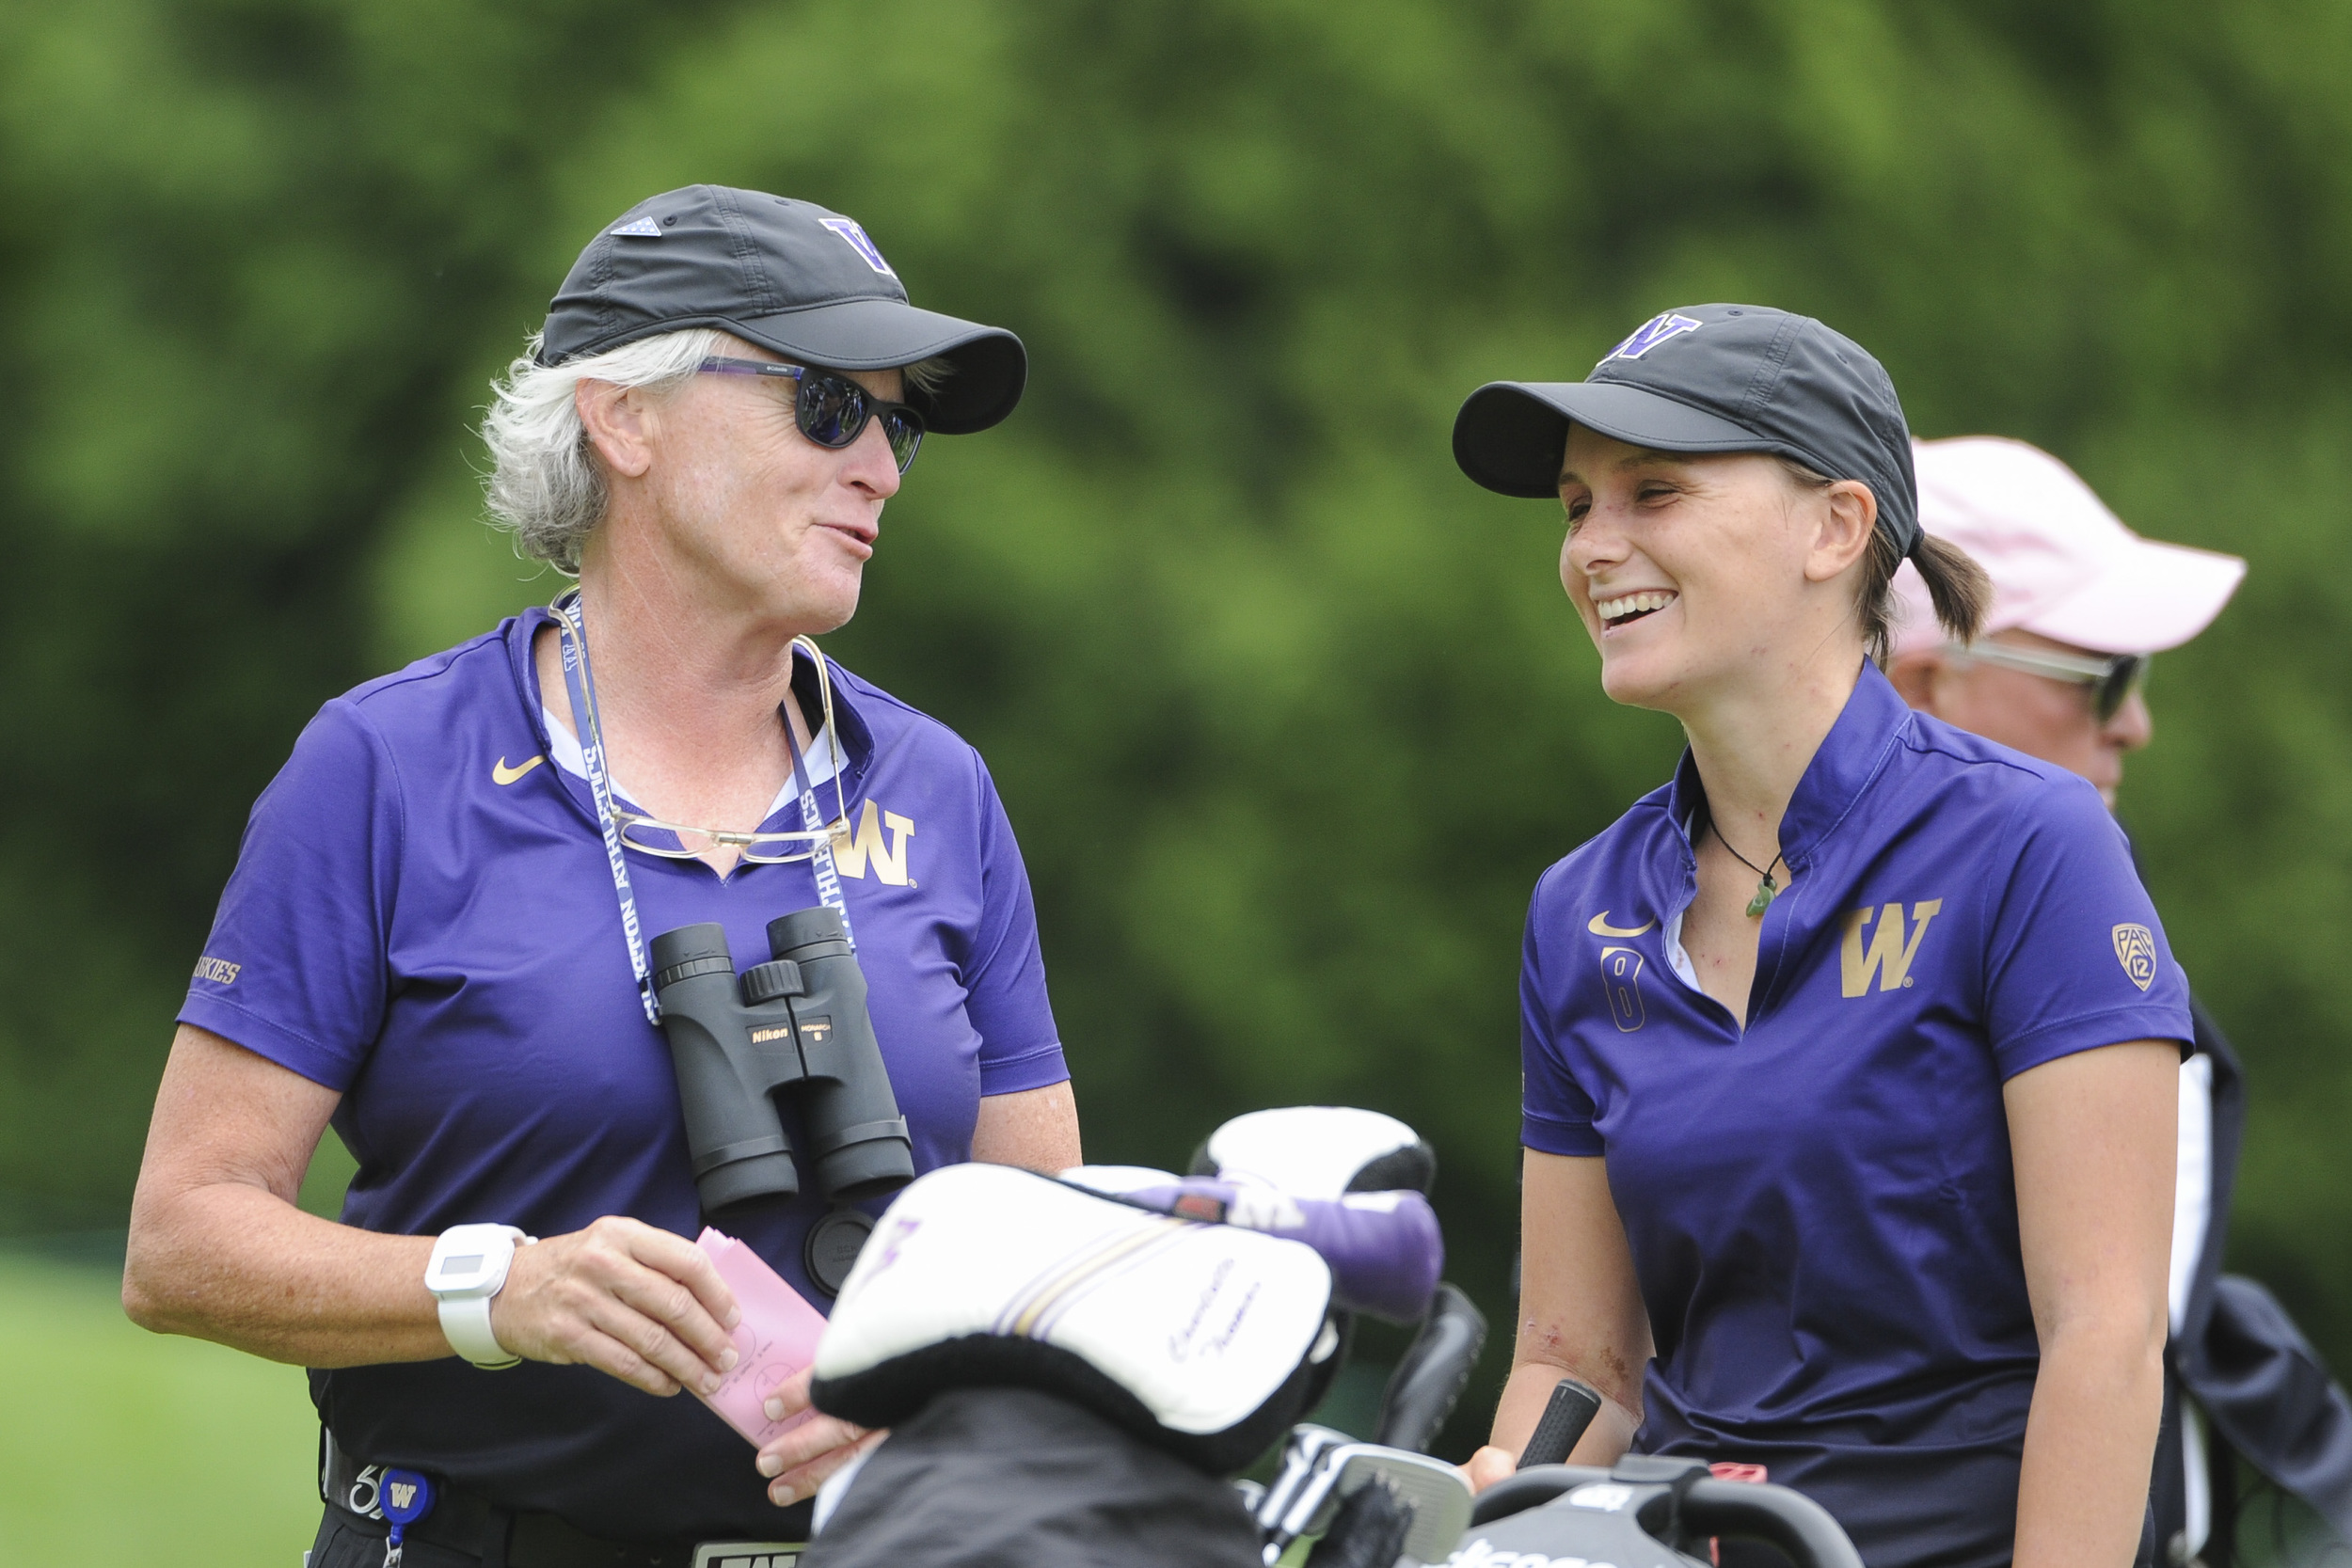 University of Washington's women's golf coach Mary Lou Mulflur (left) and one of her players, Englishwoman Charlotte Thomas, are all smiles after the university's win at the NCAA championship. Photo: University of Washington.